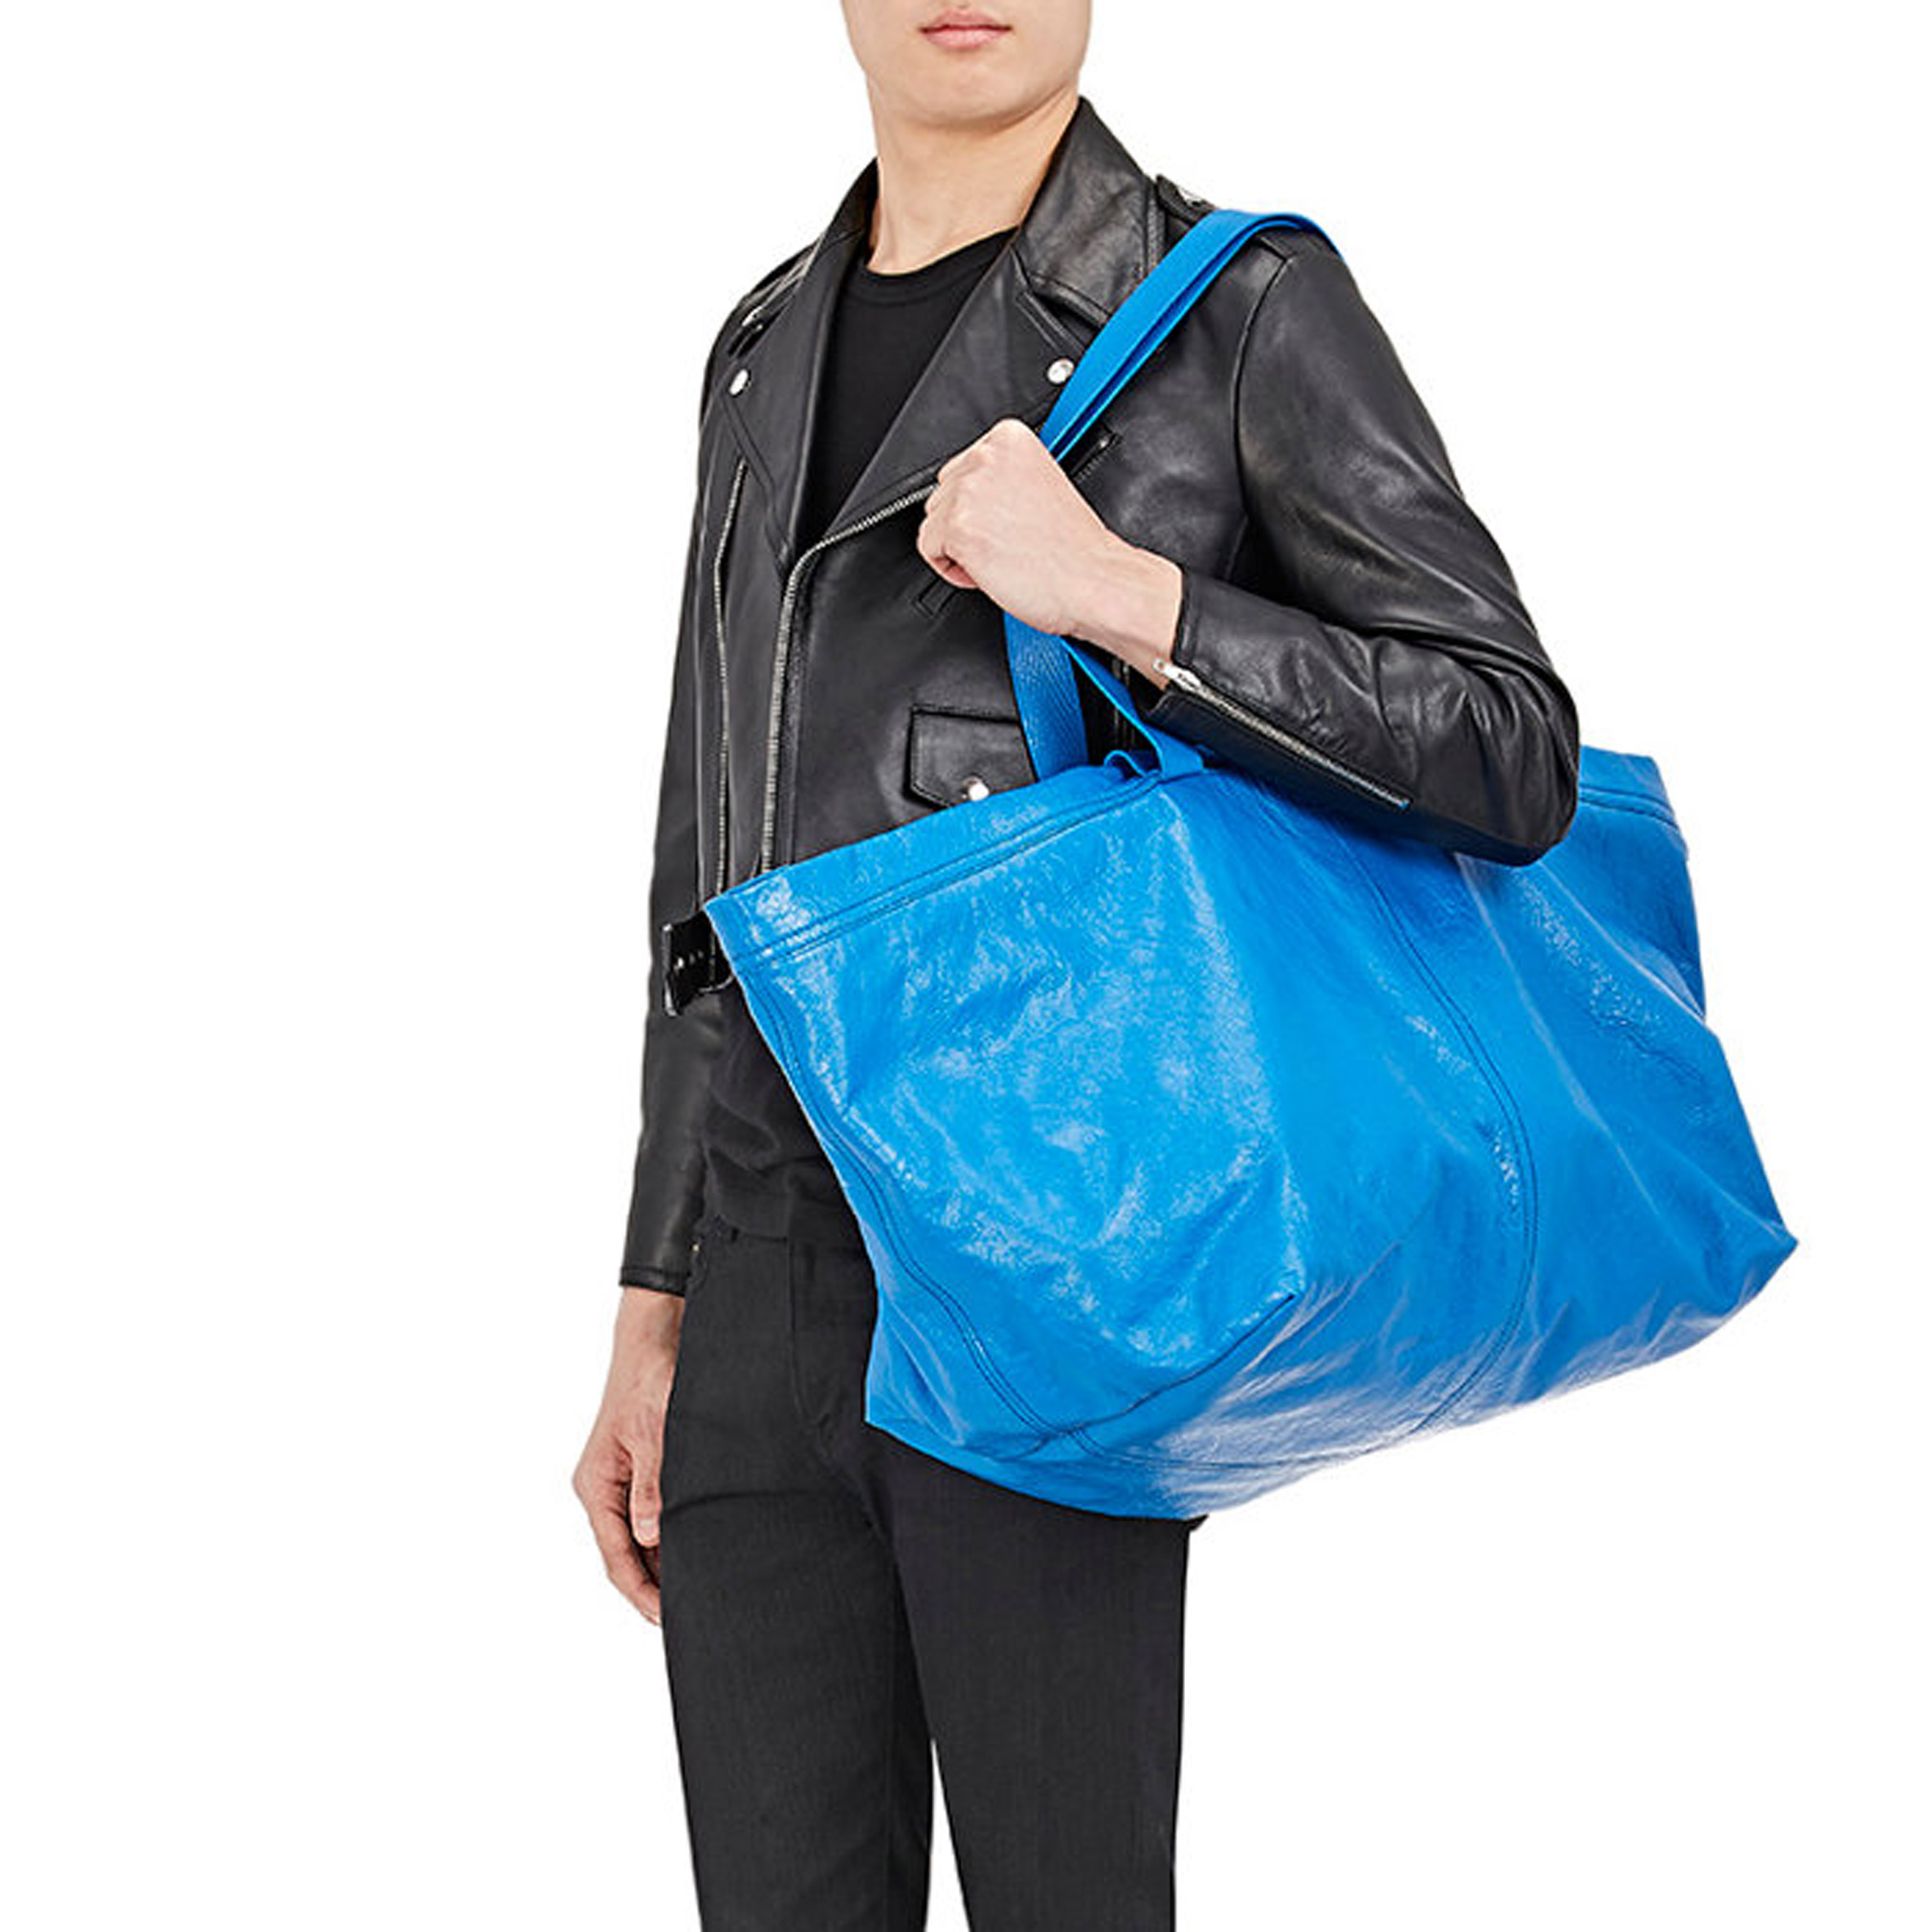 a2400106c66 Balenciaga sells £1,705 version of IKEA's blue tote bag worth 40p